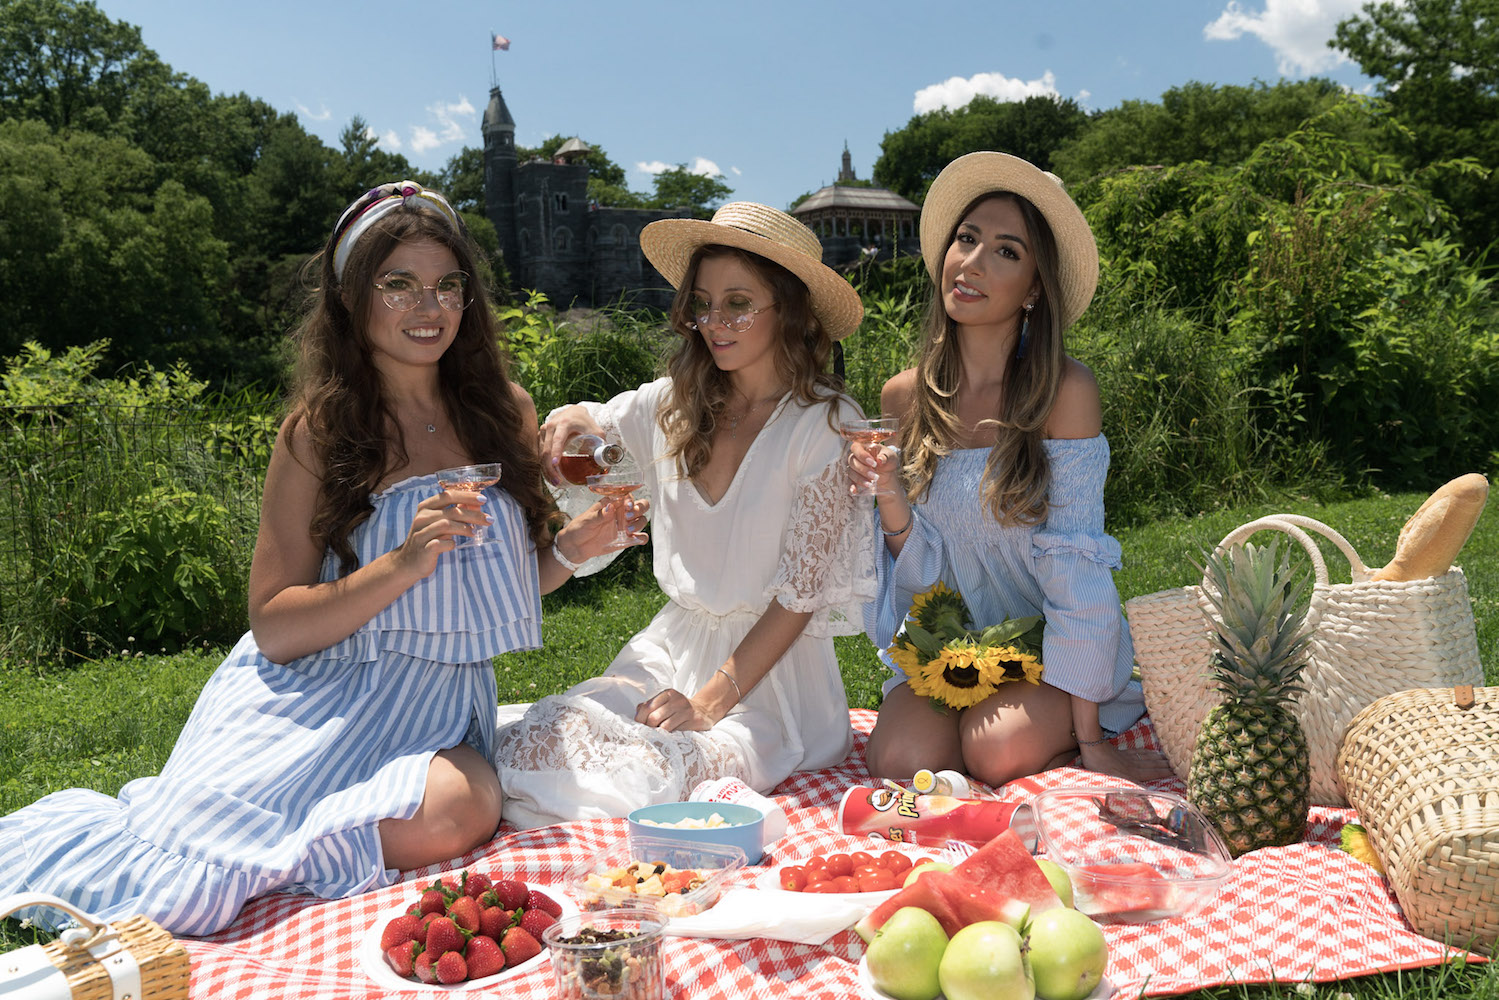 allbuenothings-shein-collaboration-sheinside-picnic-central-park